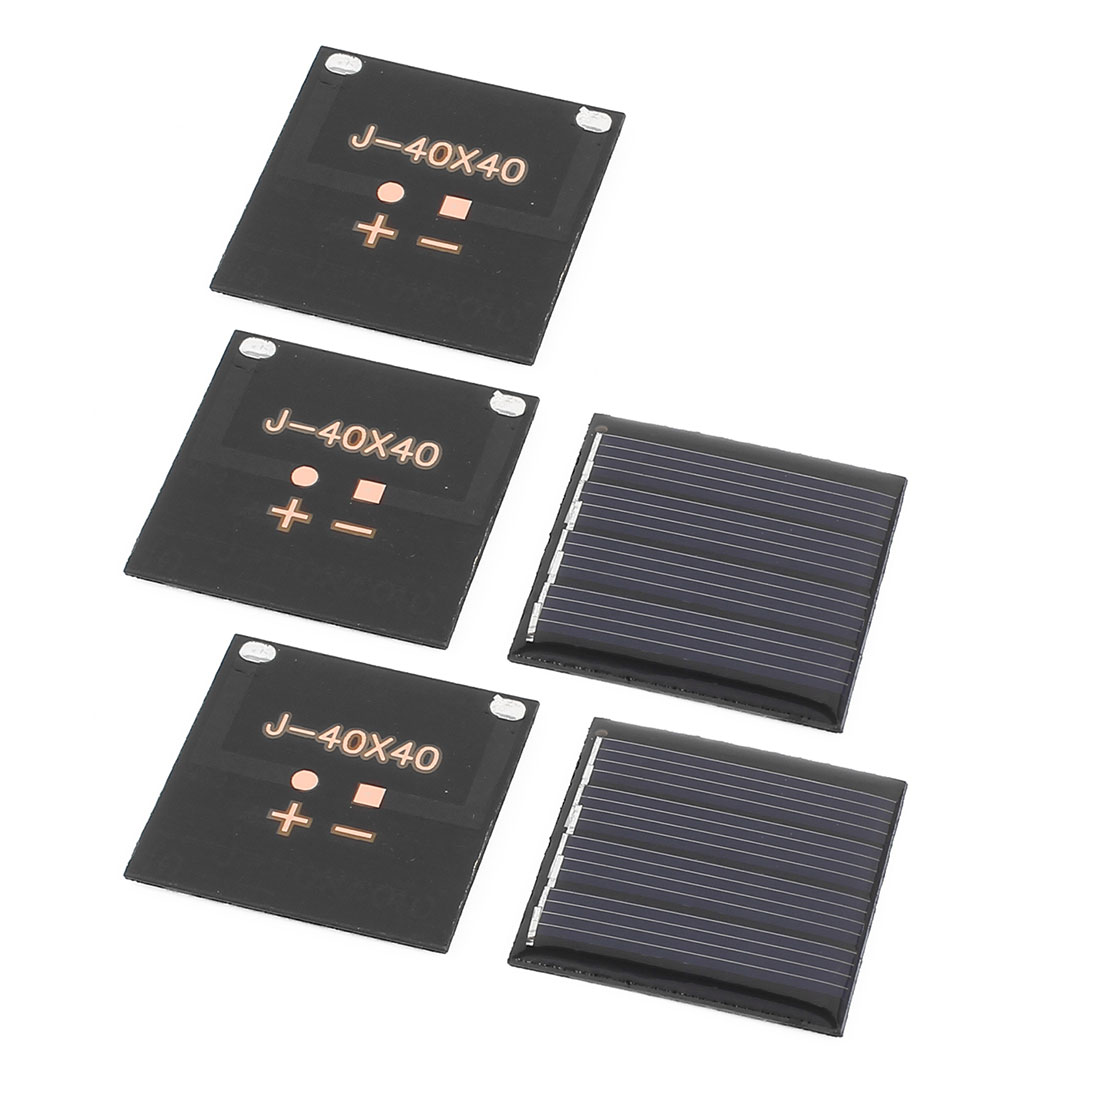 5 Pcs 2V 0.14W DIY Polycrystallinesilicon Solar Panel Power Cell Battery Charger 40mm x 40mm